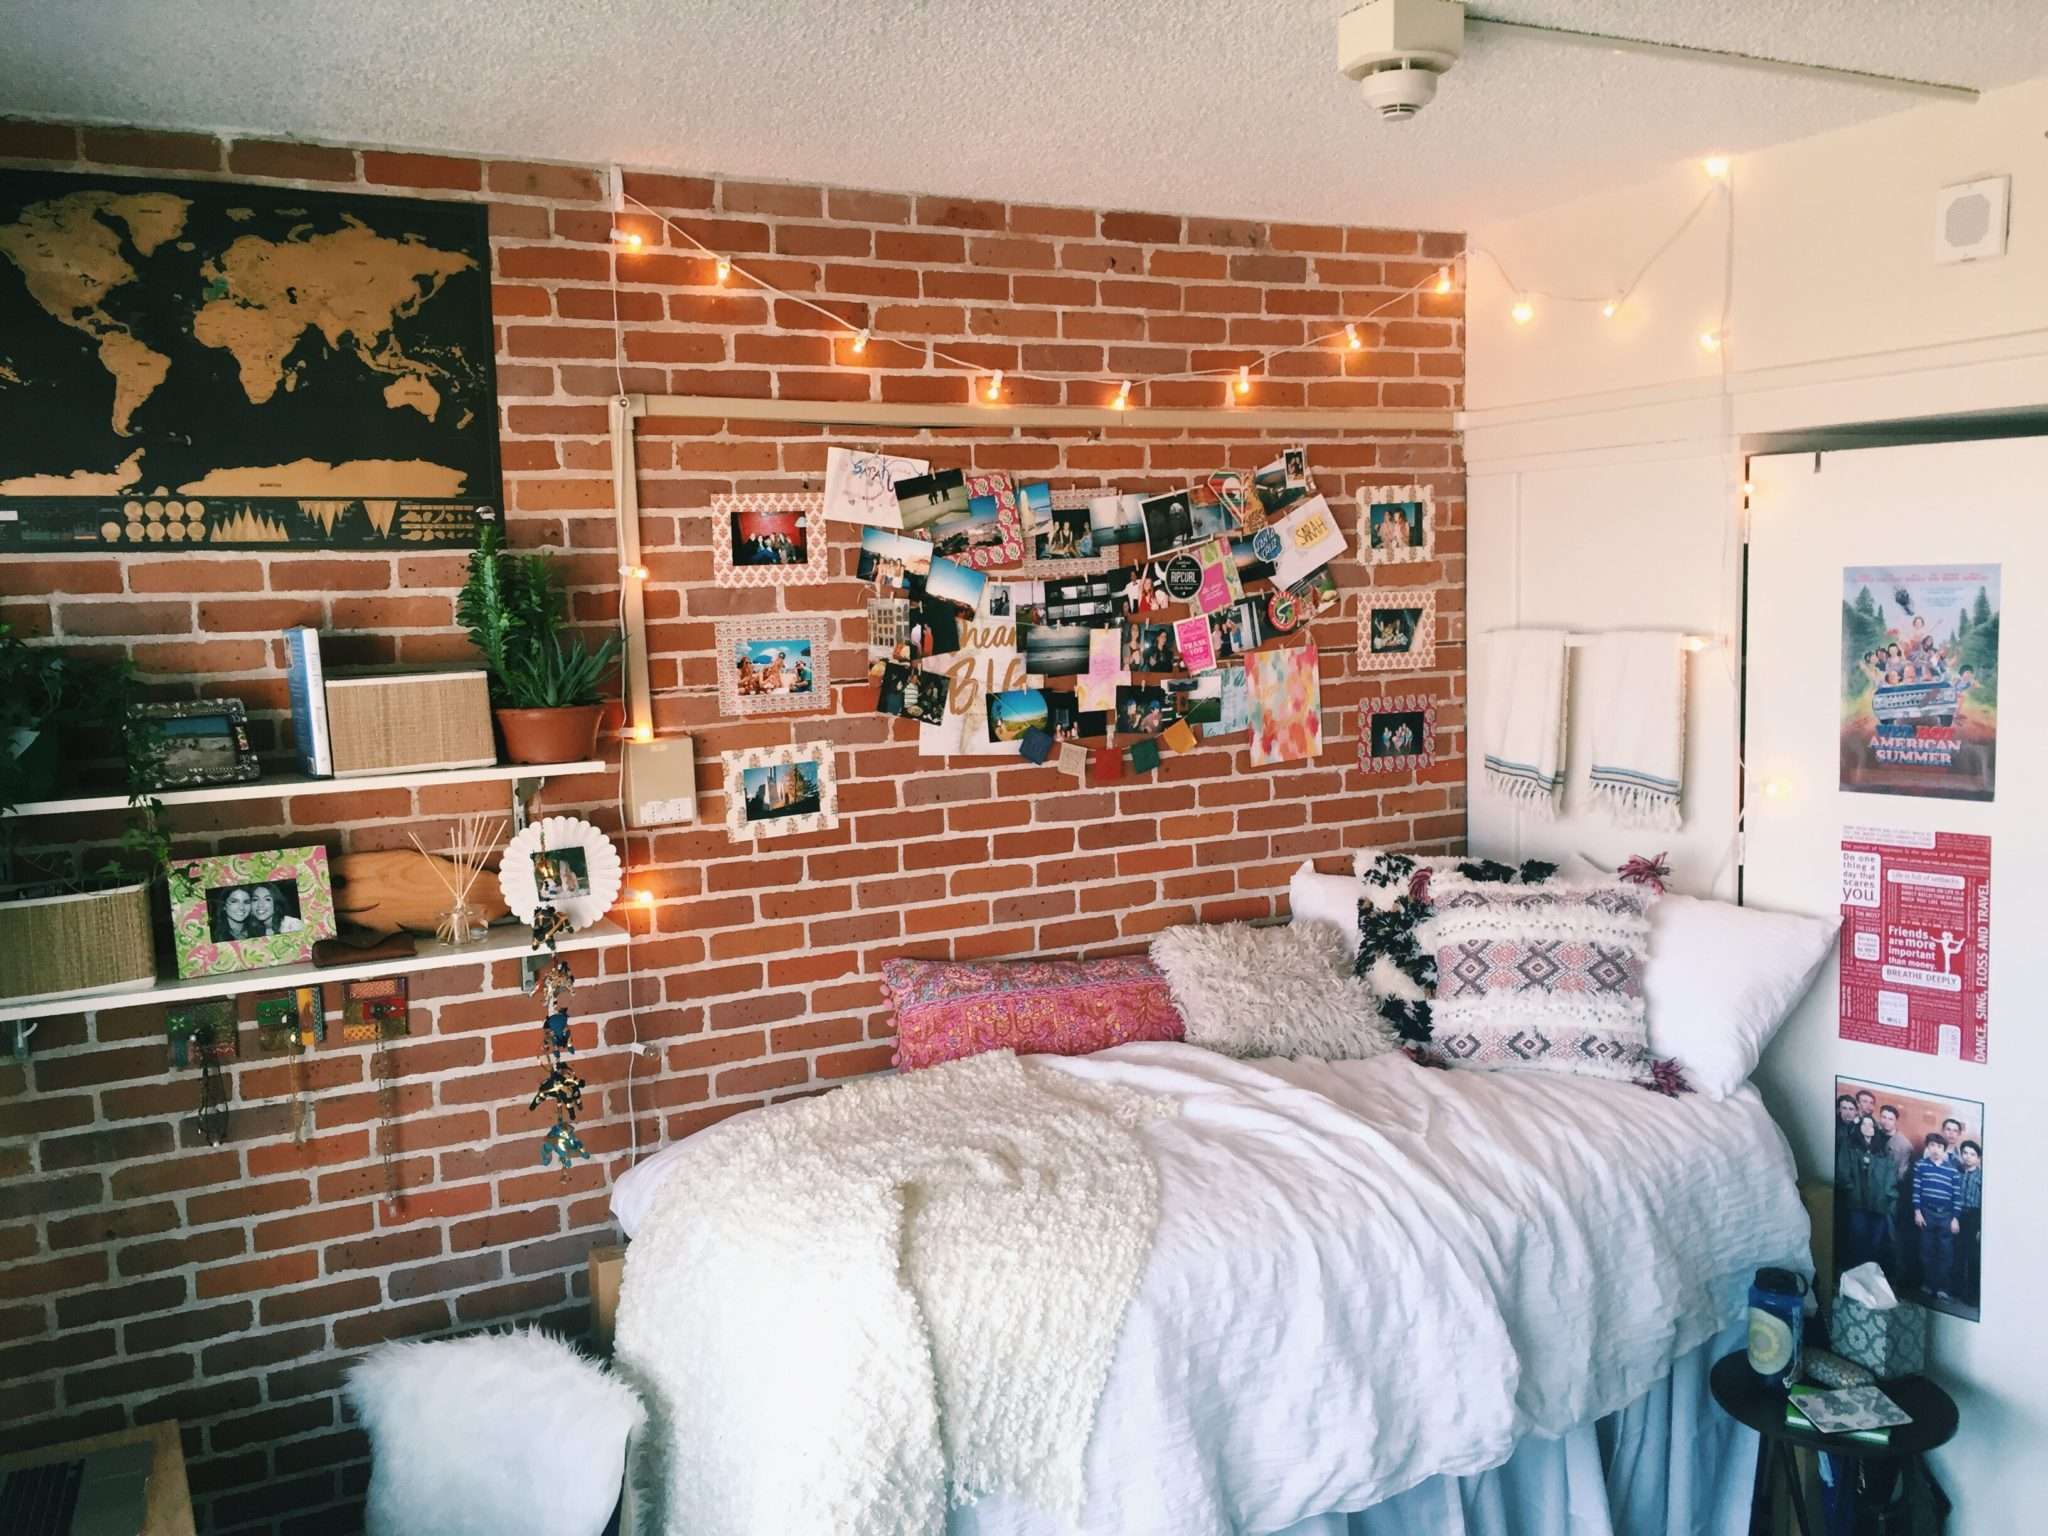 trends bedrooms girls dorm indoor pictures images of indoors rustic for lights single to new hang gallery decorative bedroom including in amazing lighting teenage string bed small hanging also enchanting target ideas room chandelier how star